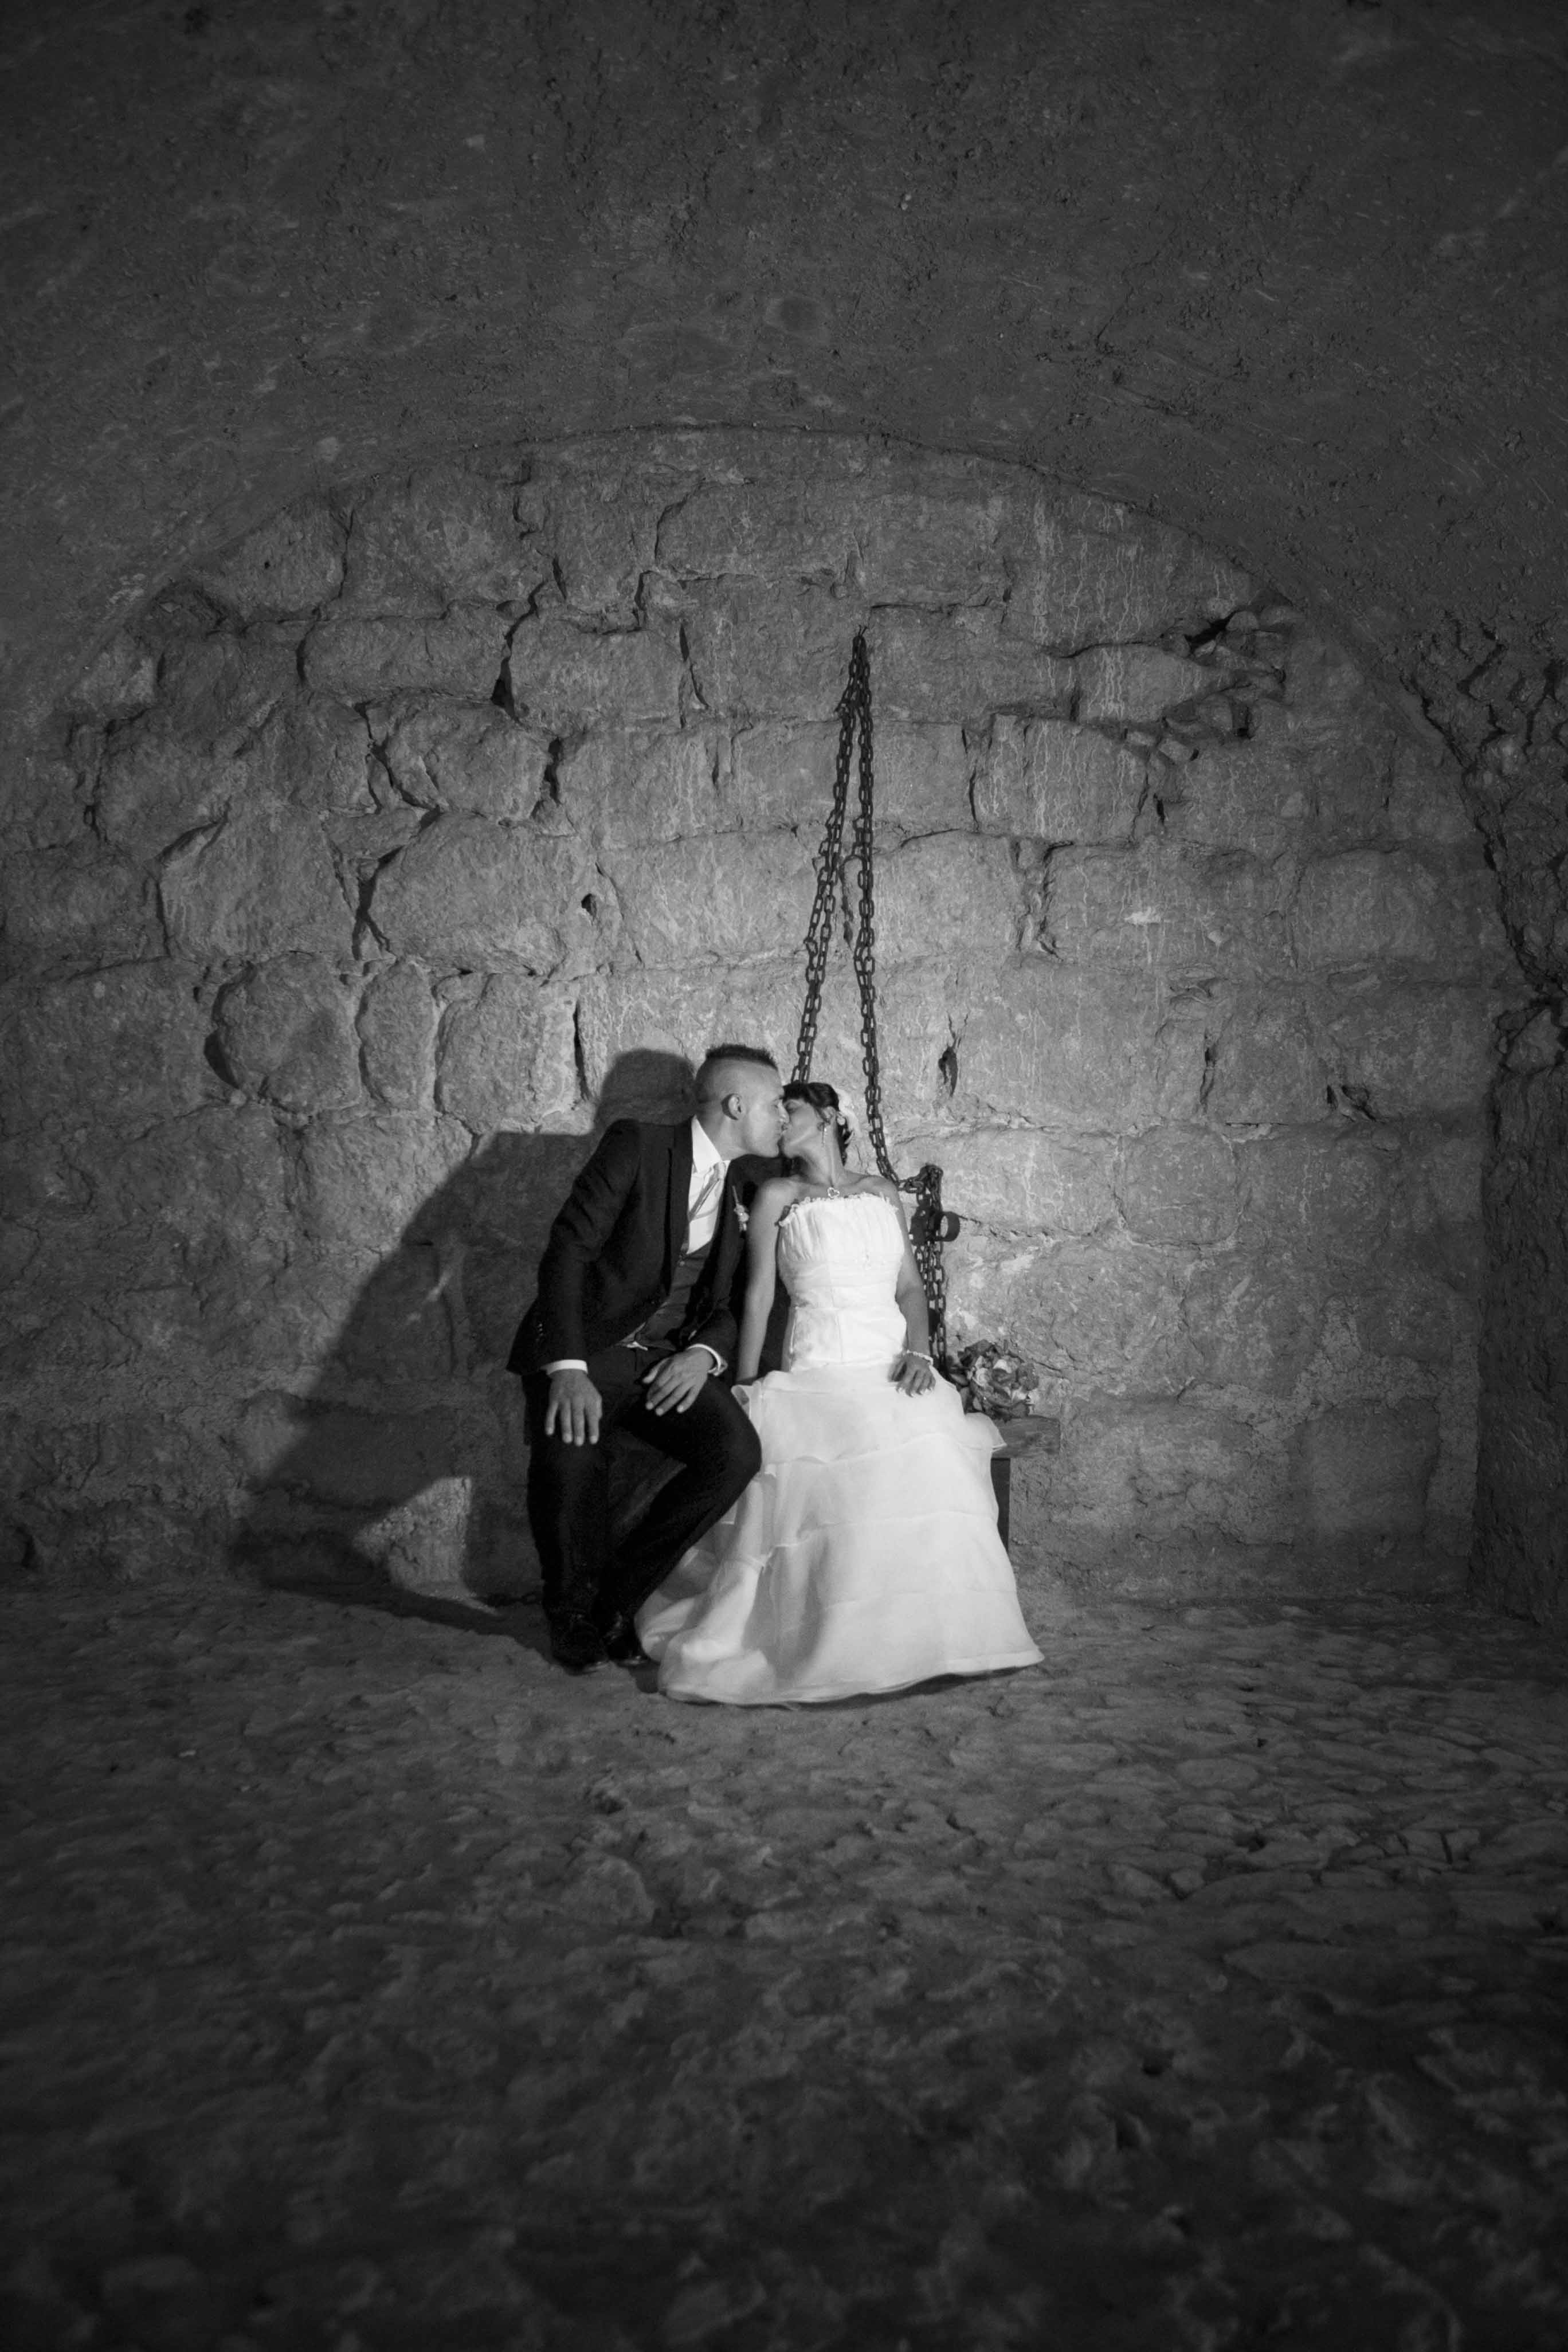 fotografo y video de boda en madrid,toledo. - Madrid